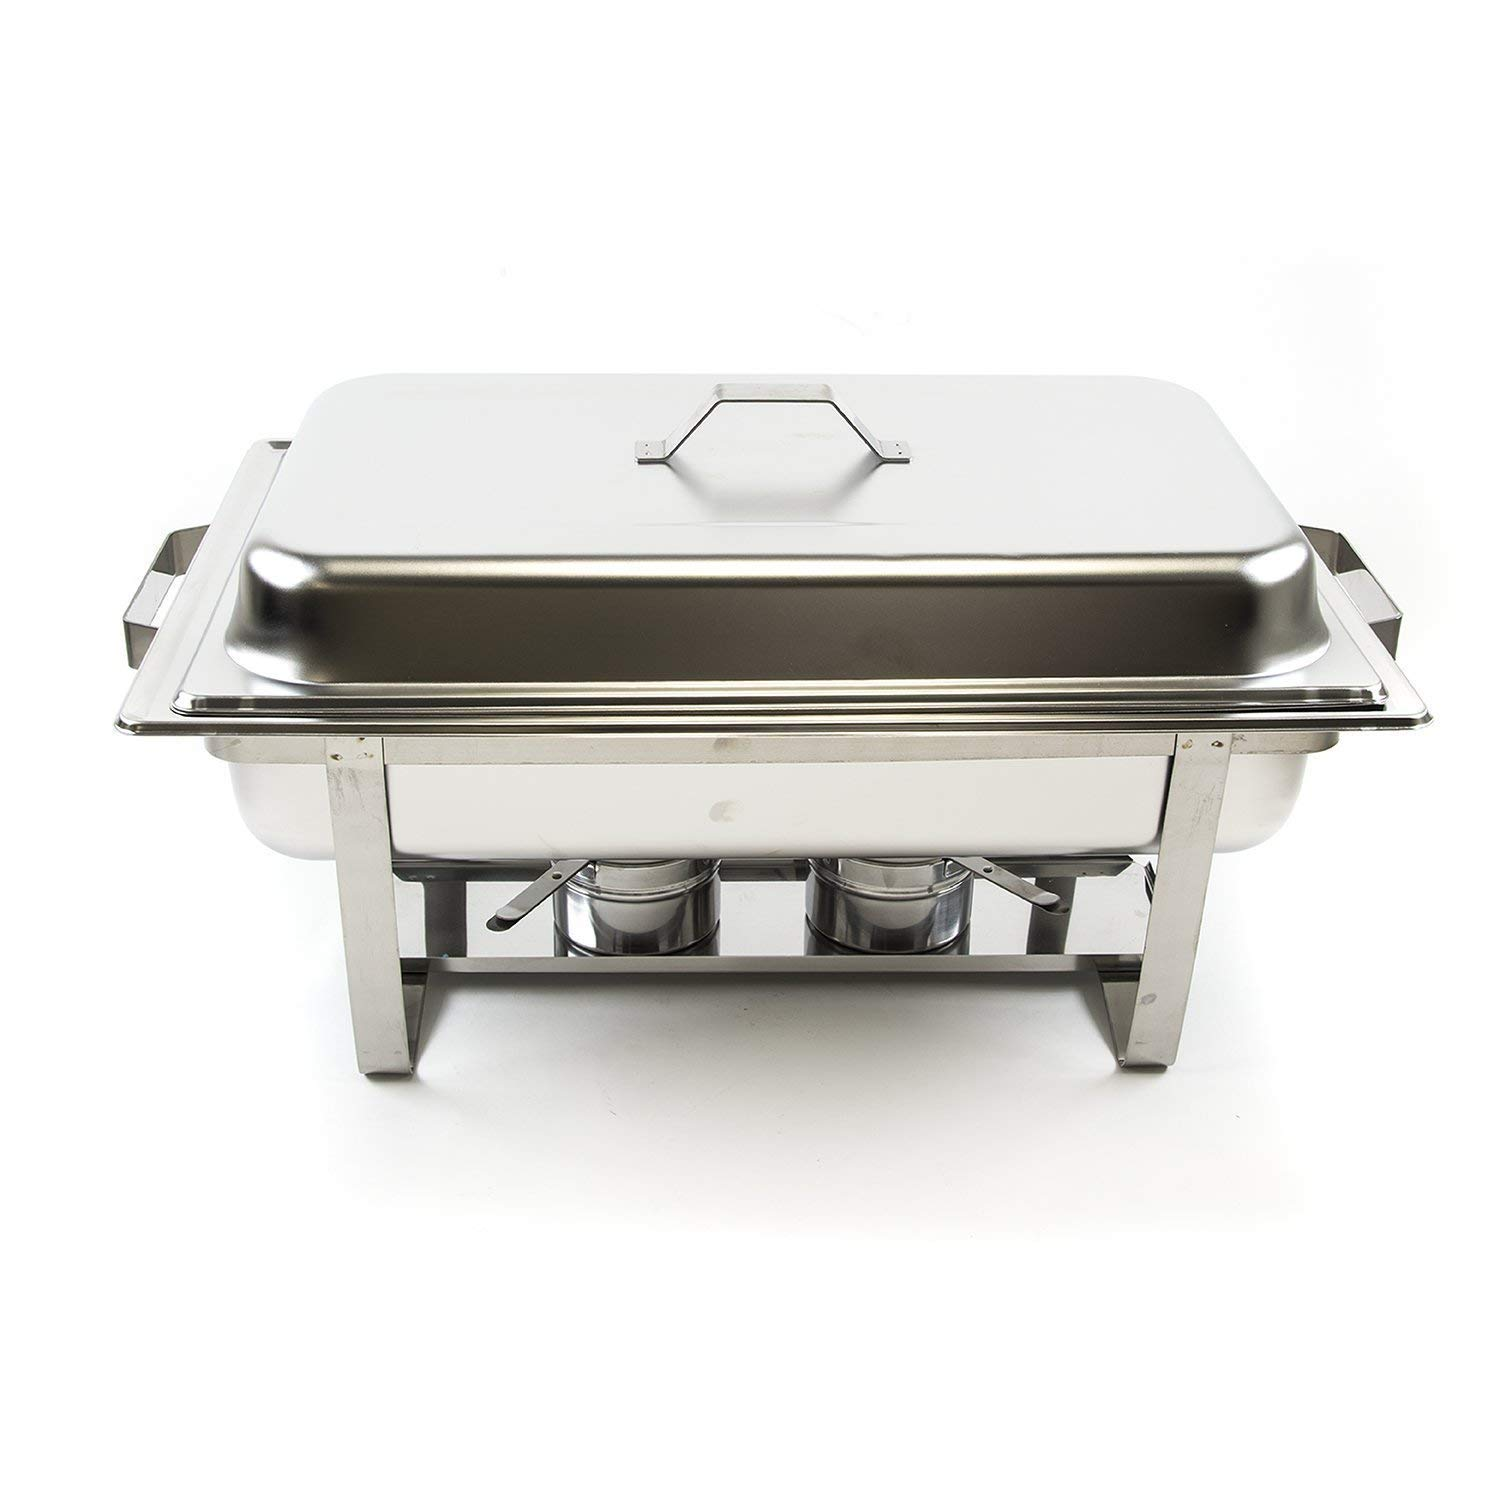 Chafing Dishes Stainless Steel 8 Quart Rectangular